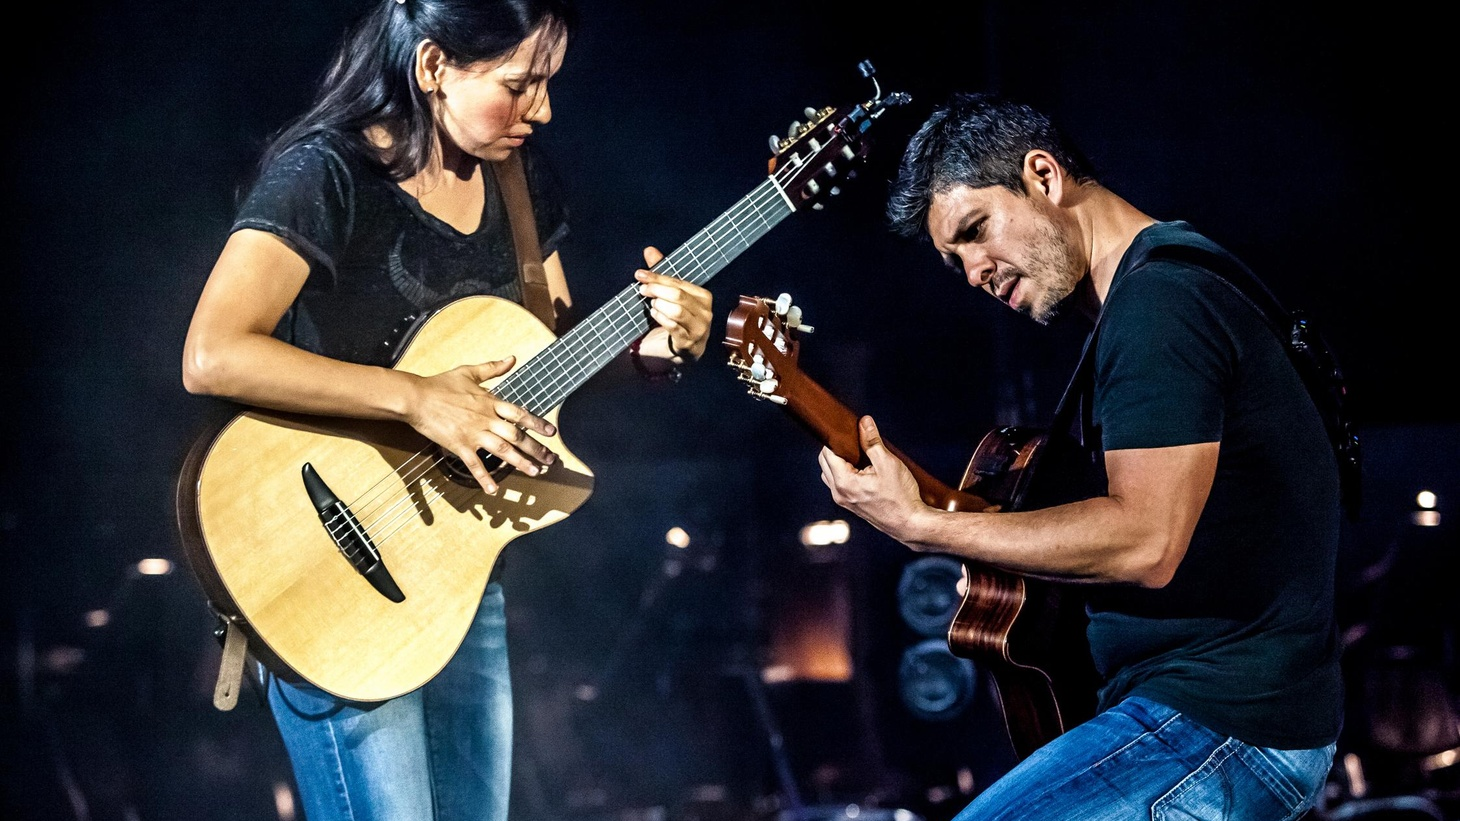 Master guitarists Rodrigo y Gabriela transform their instruments into percussive vehicles of melody on Today's Top Tune.